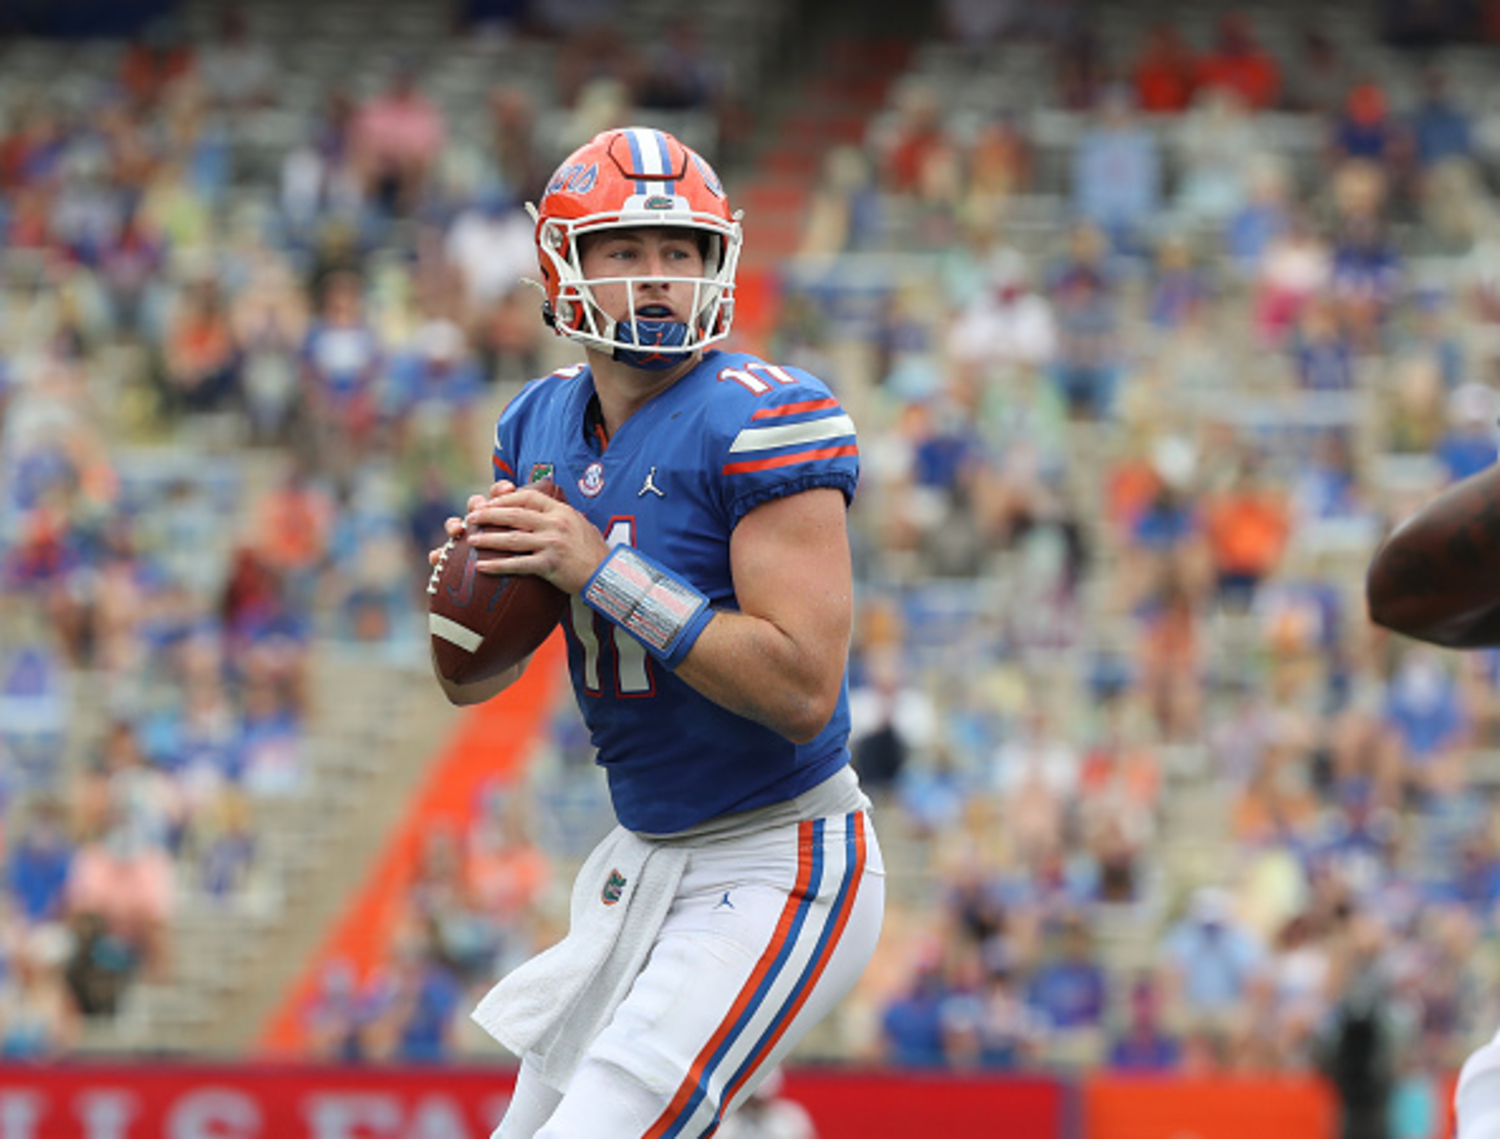 Kyle Trask is having a standout career at Florida